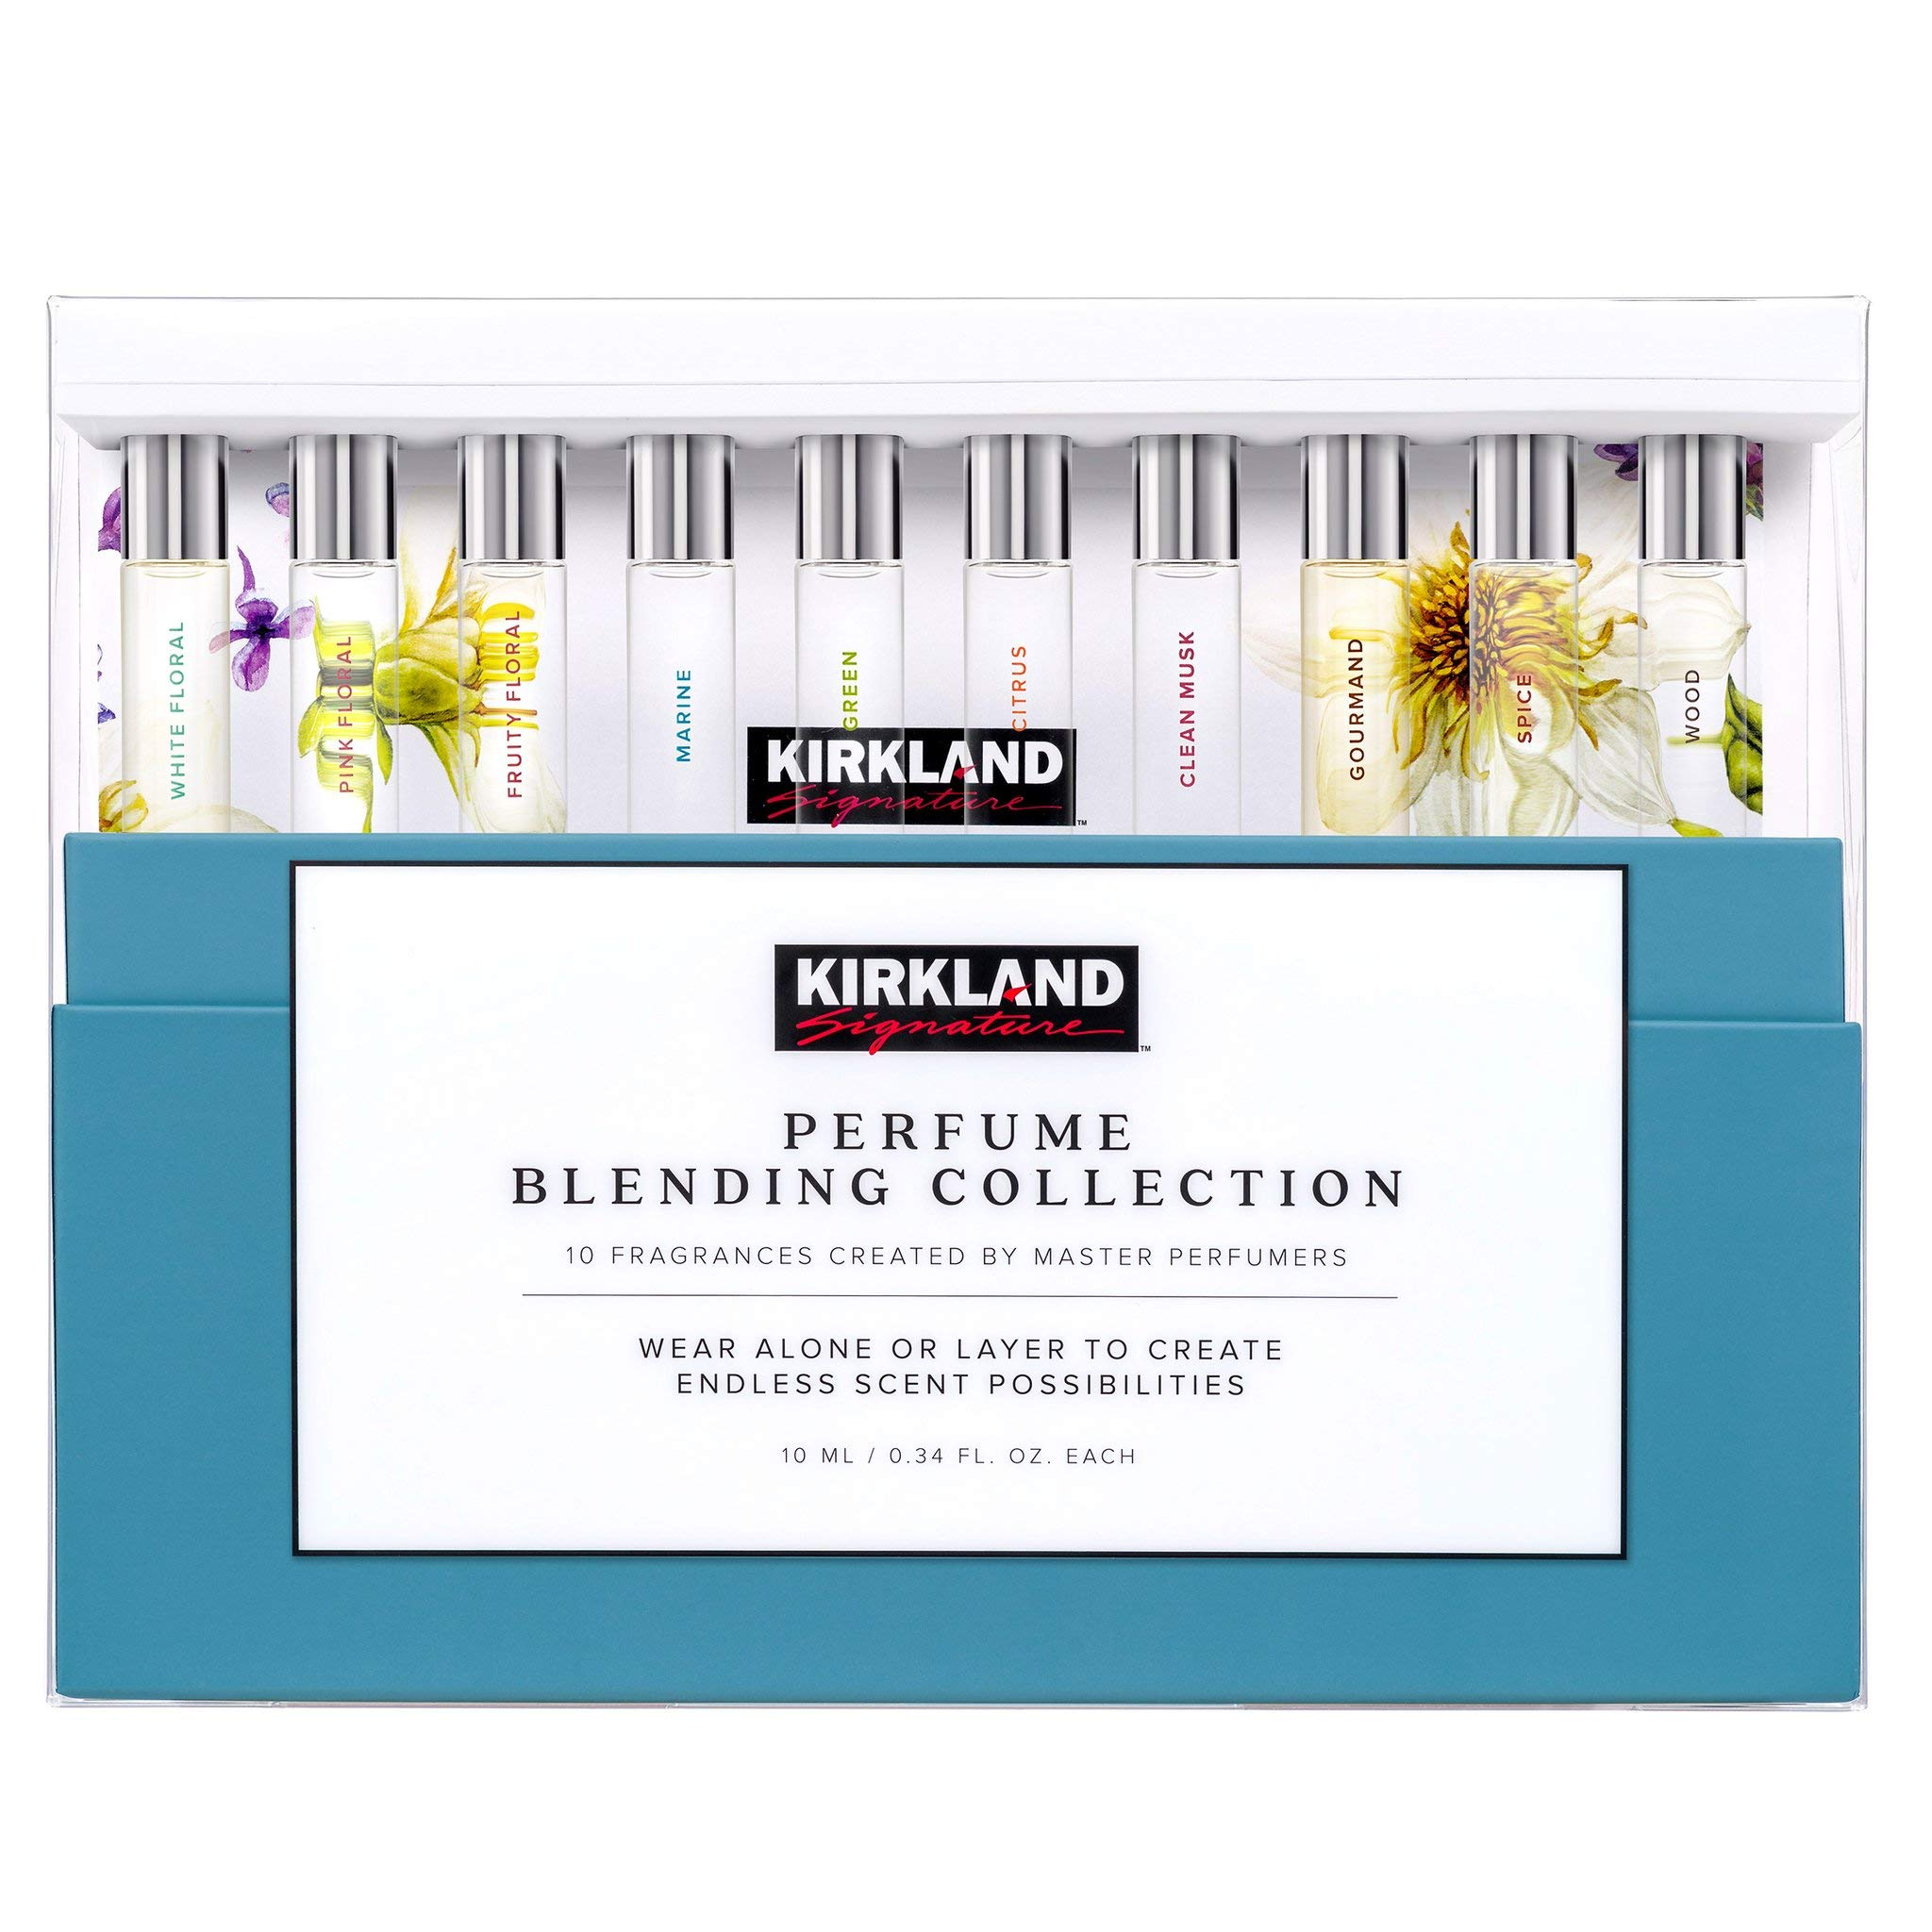 null - Perfume Blending Collection Kit